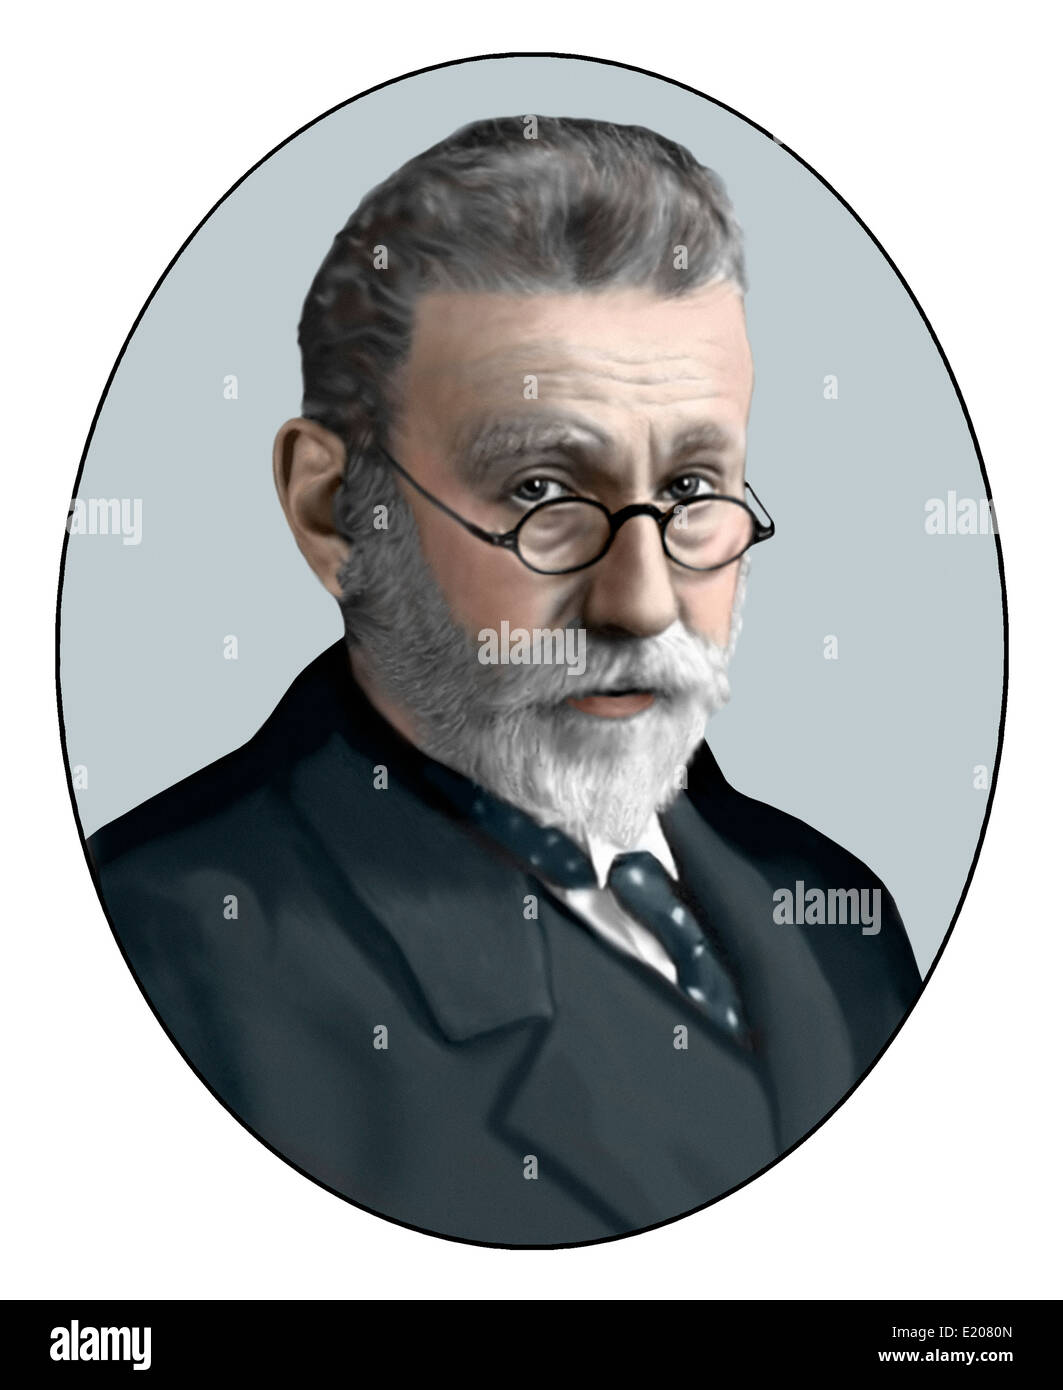 Paul Ehrlich; 1854 1915; German Bacteriologist; Illustration - Stock Image